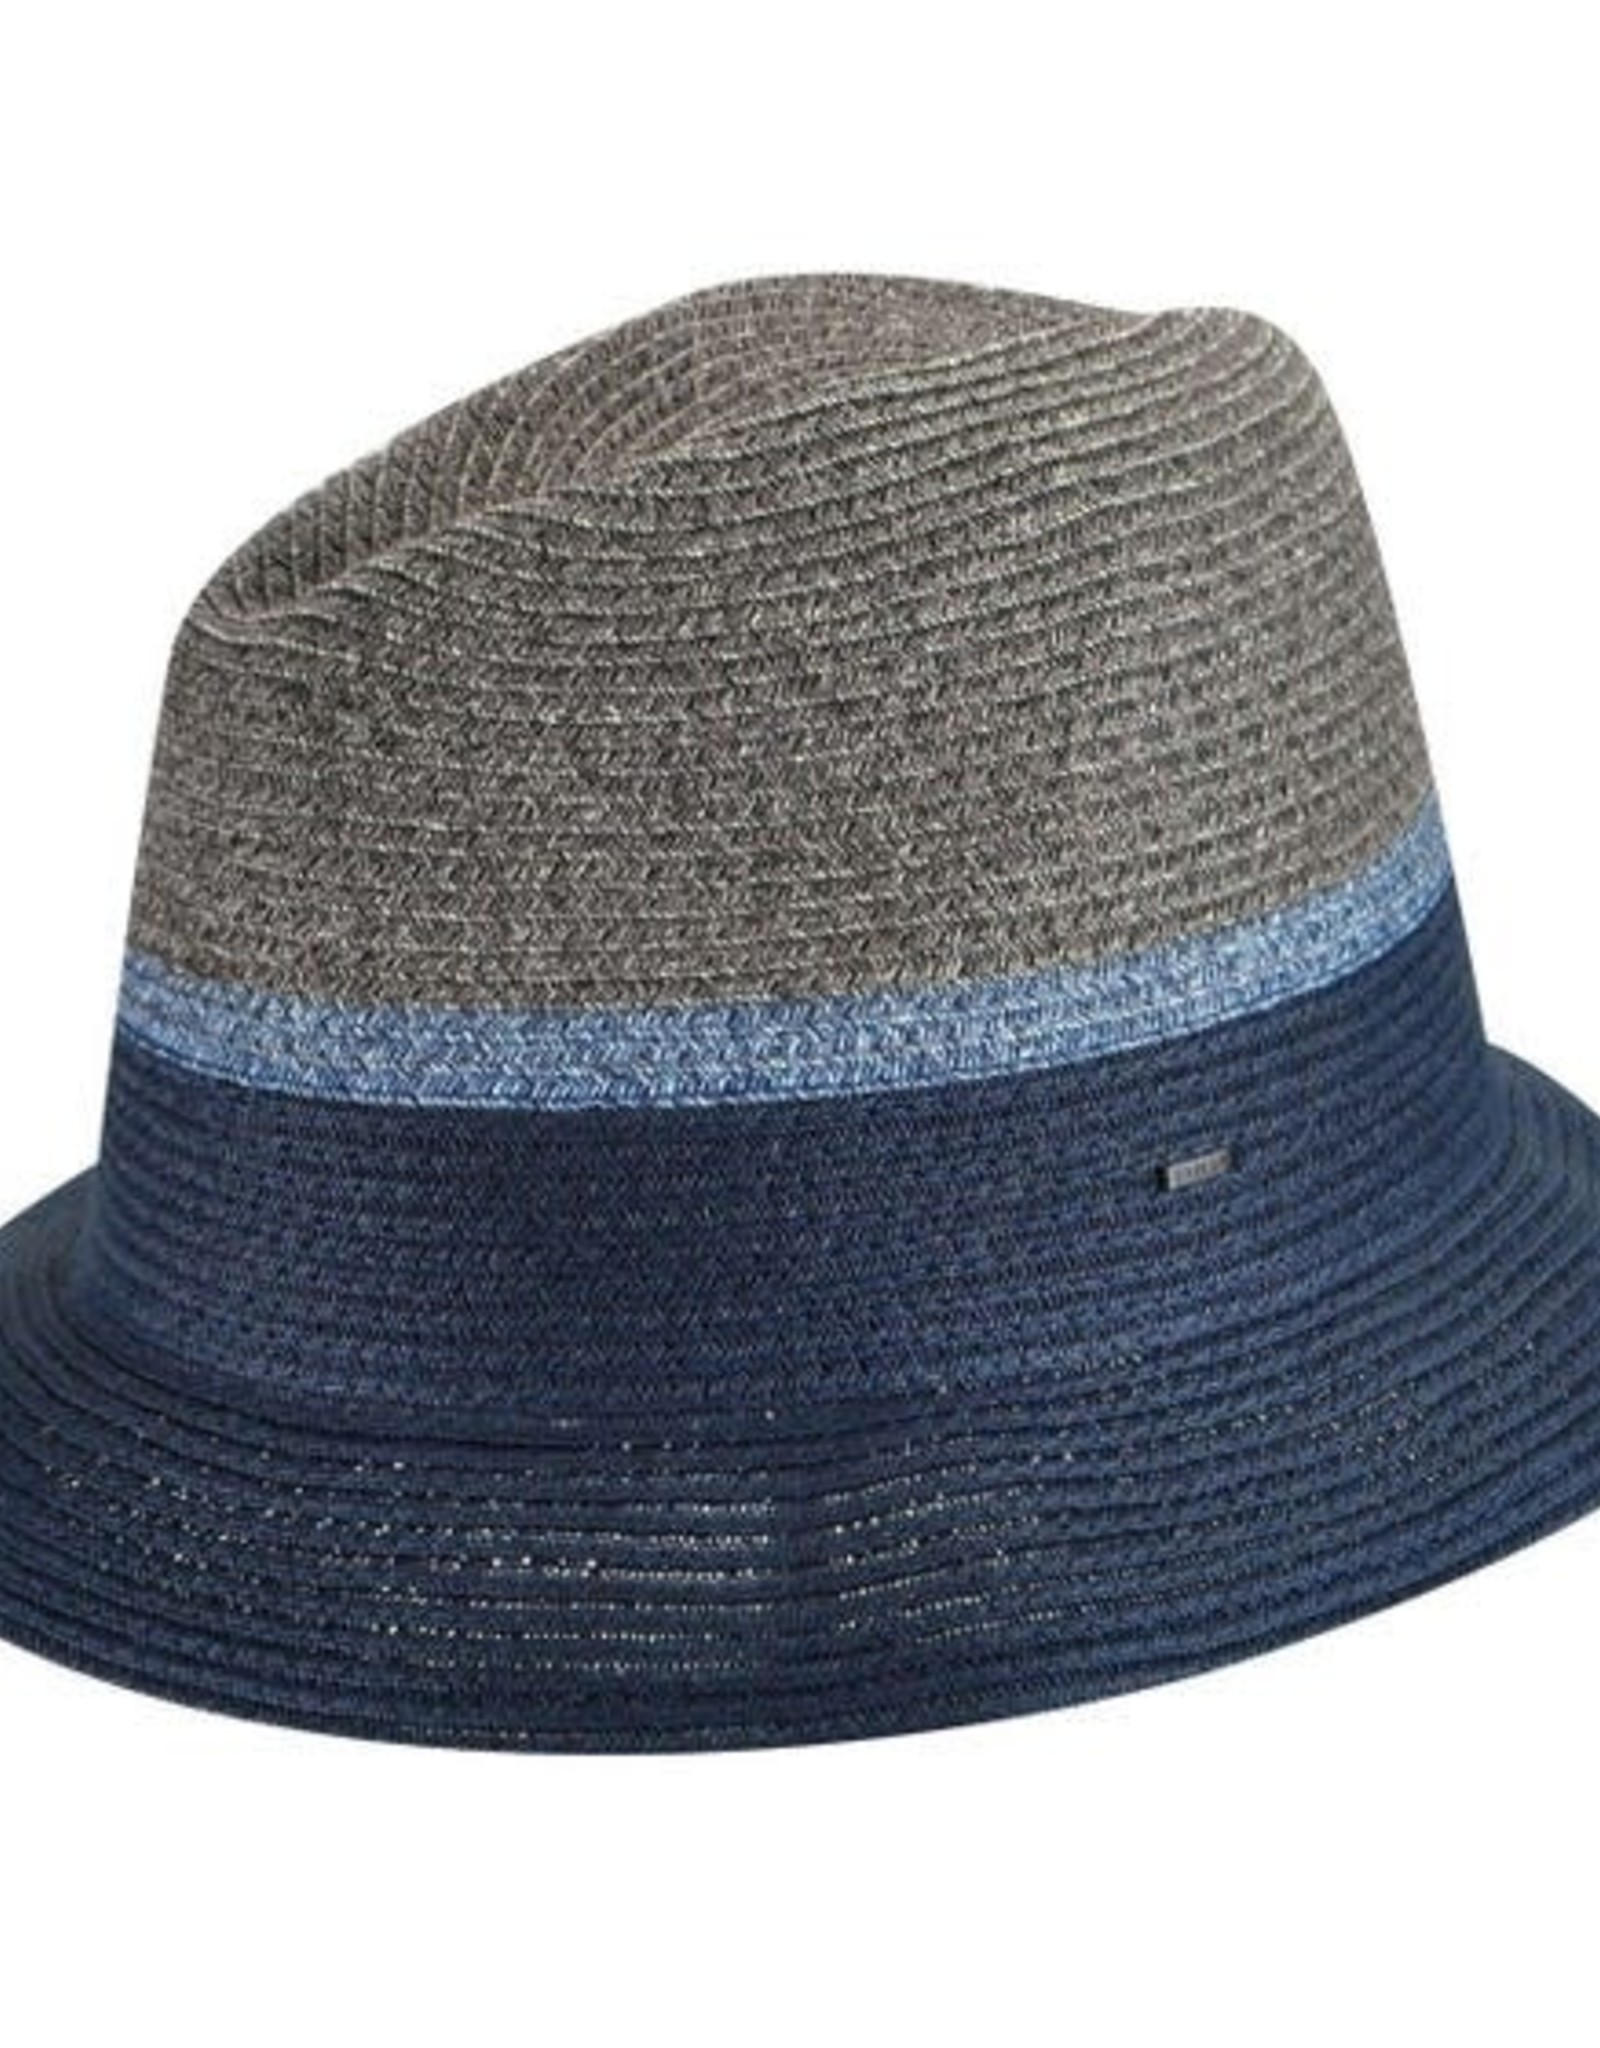 Bailey Hat Co. HAT-FEDORA-DILLANE, STRAW, NAVY, CRUSHABLE, SMALL